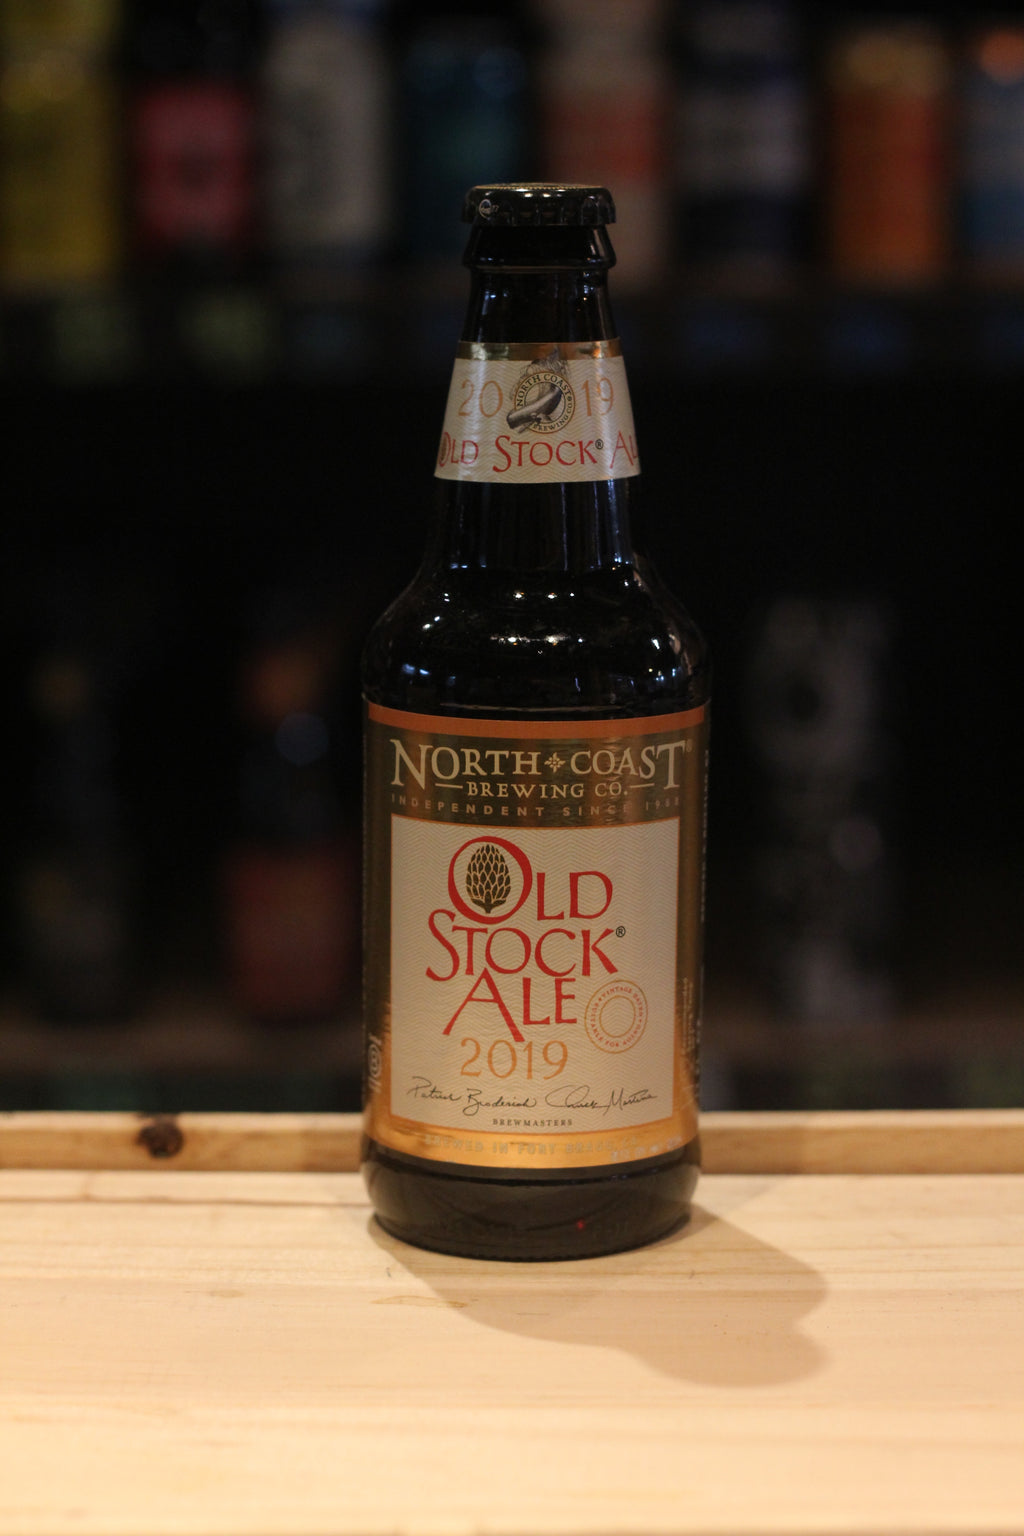 North Coast Old Stock Ale 2019